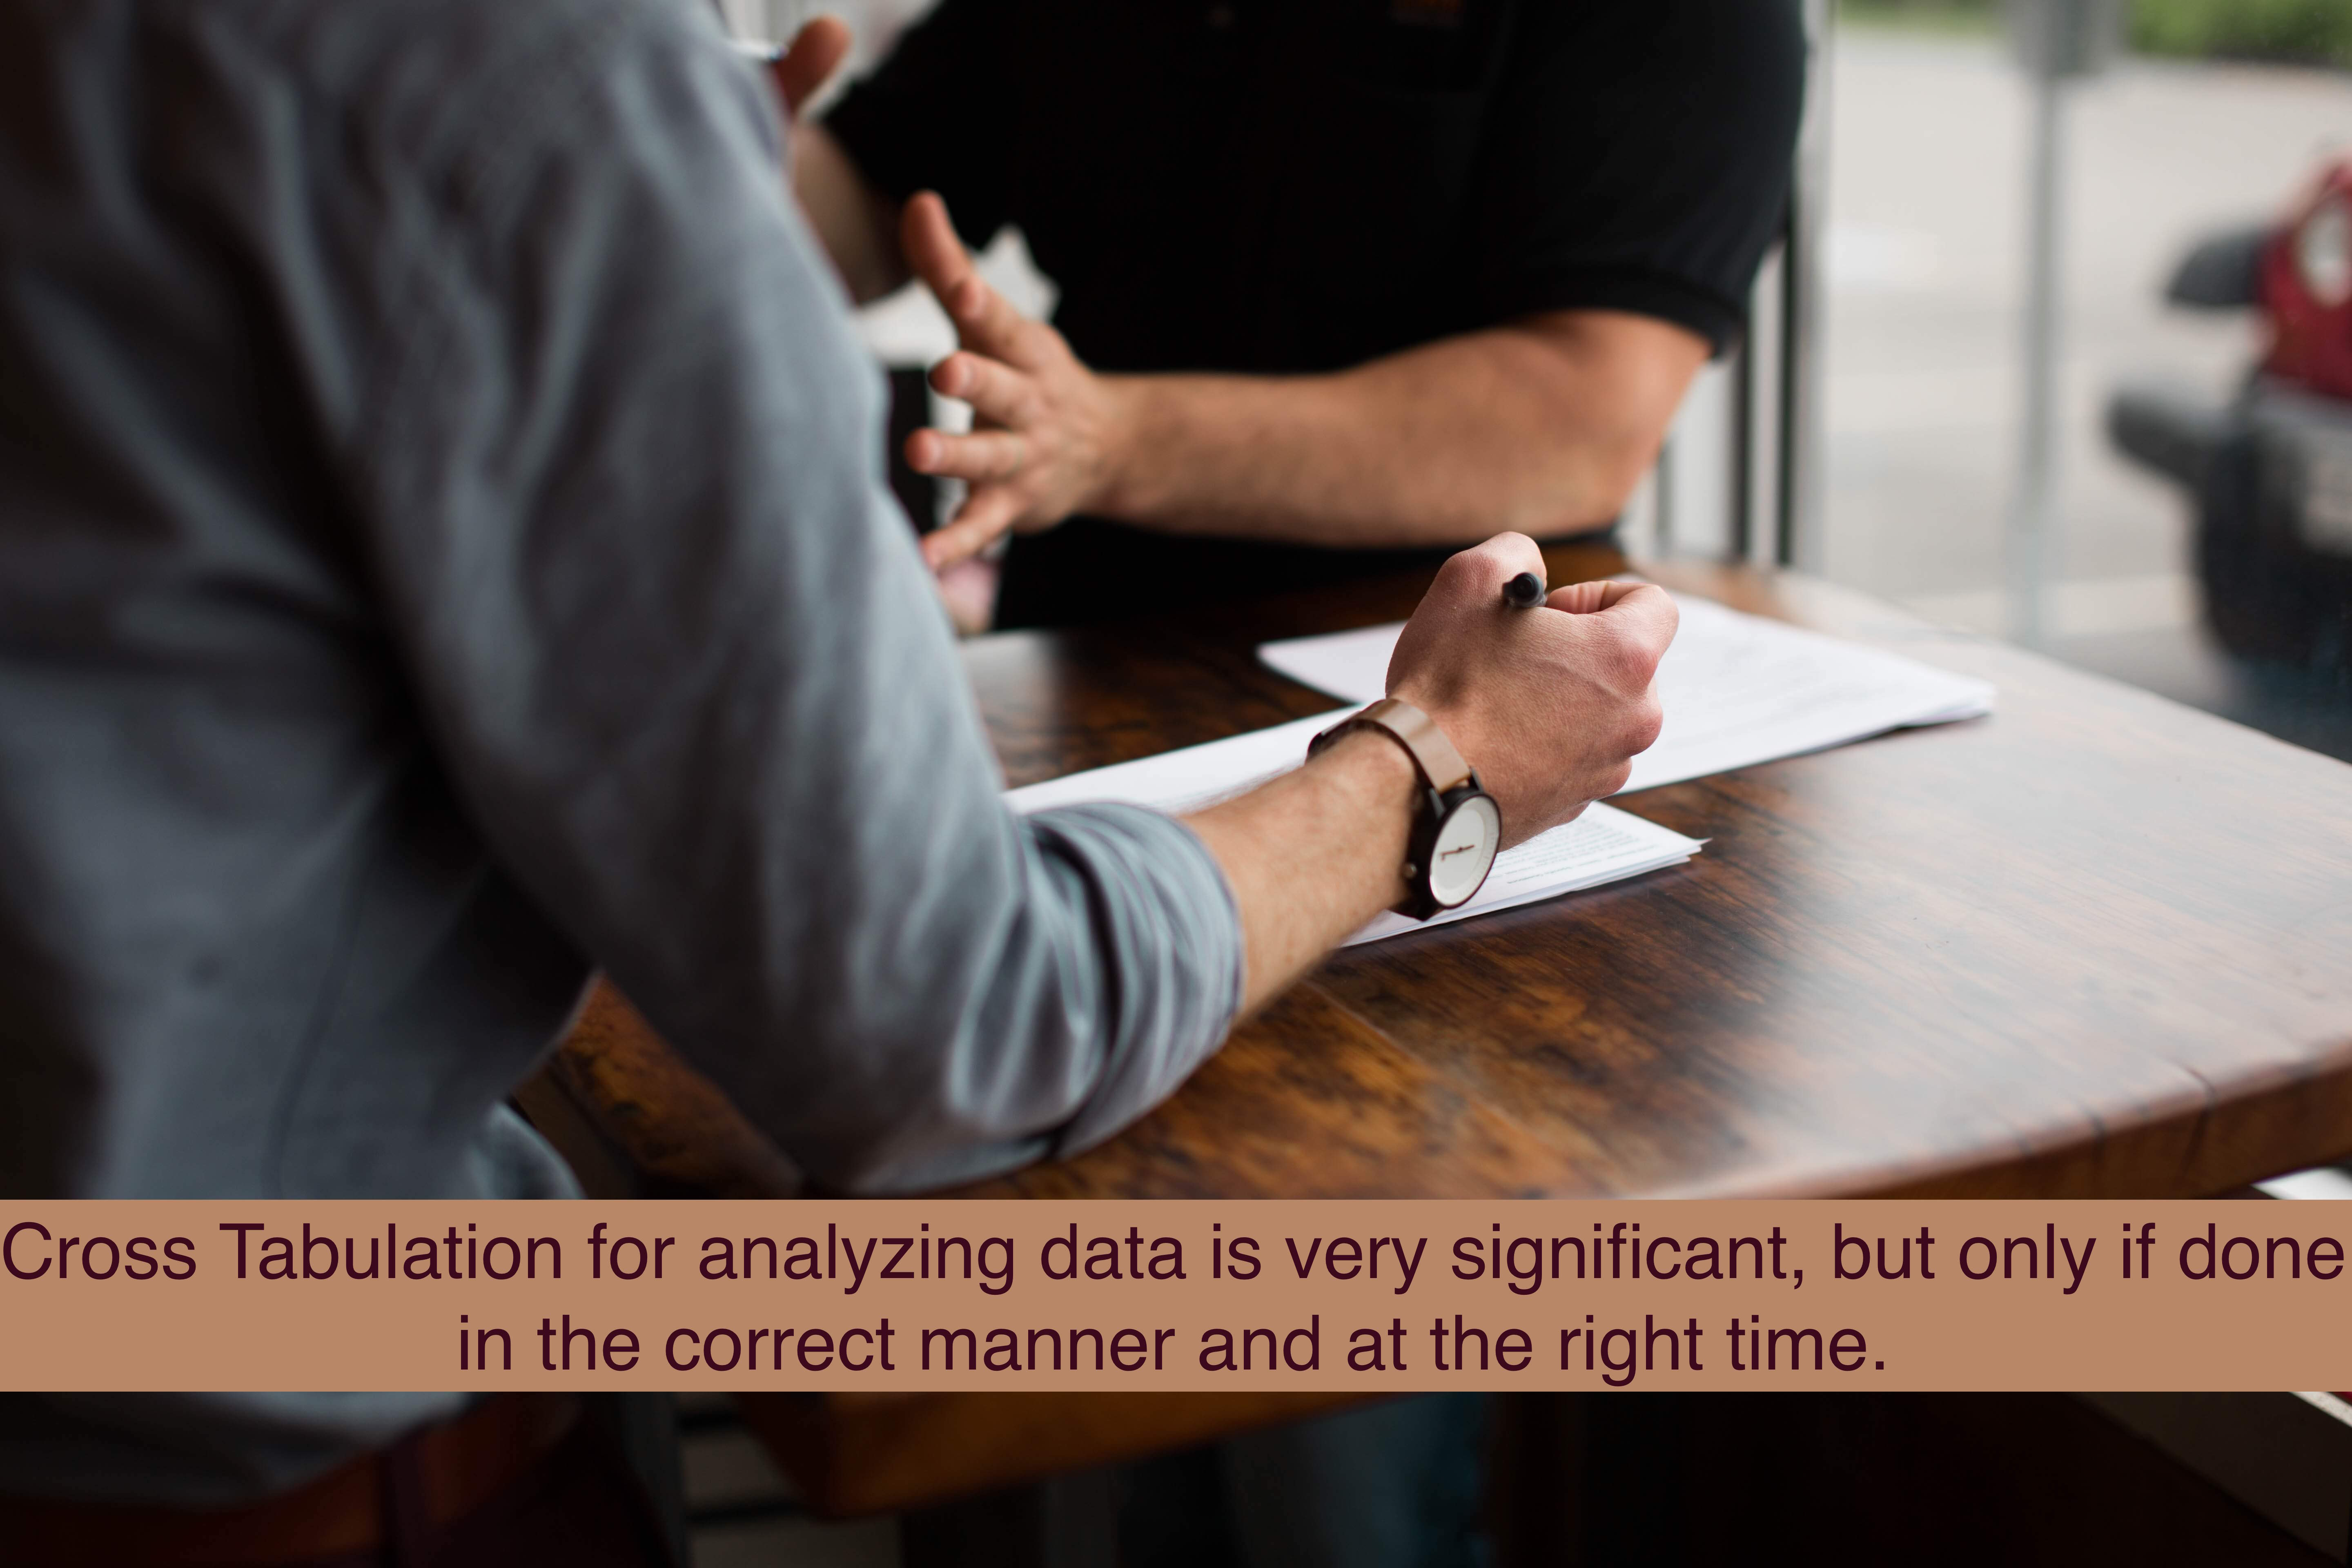 Cross Tabulation for analyzing data is very significant, but only if done in the correct manner and at the right time.